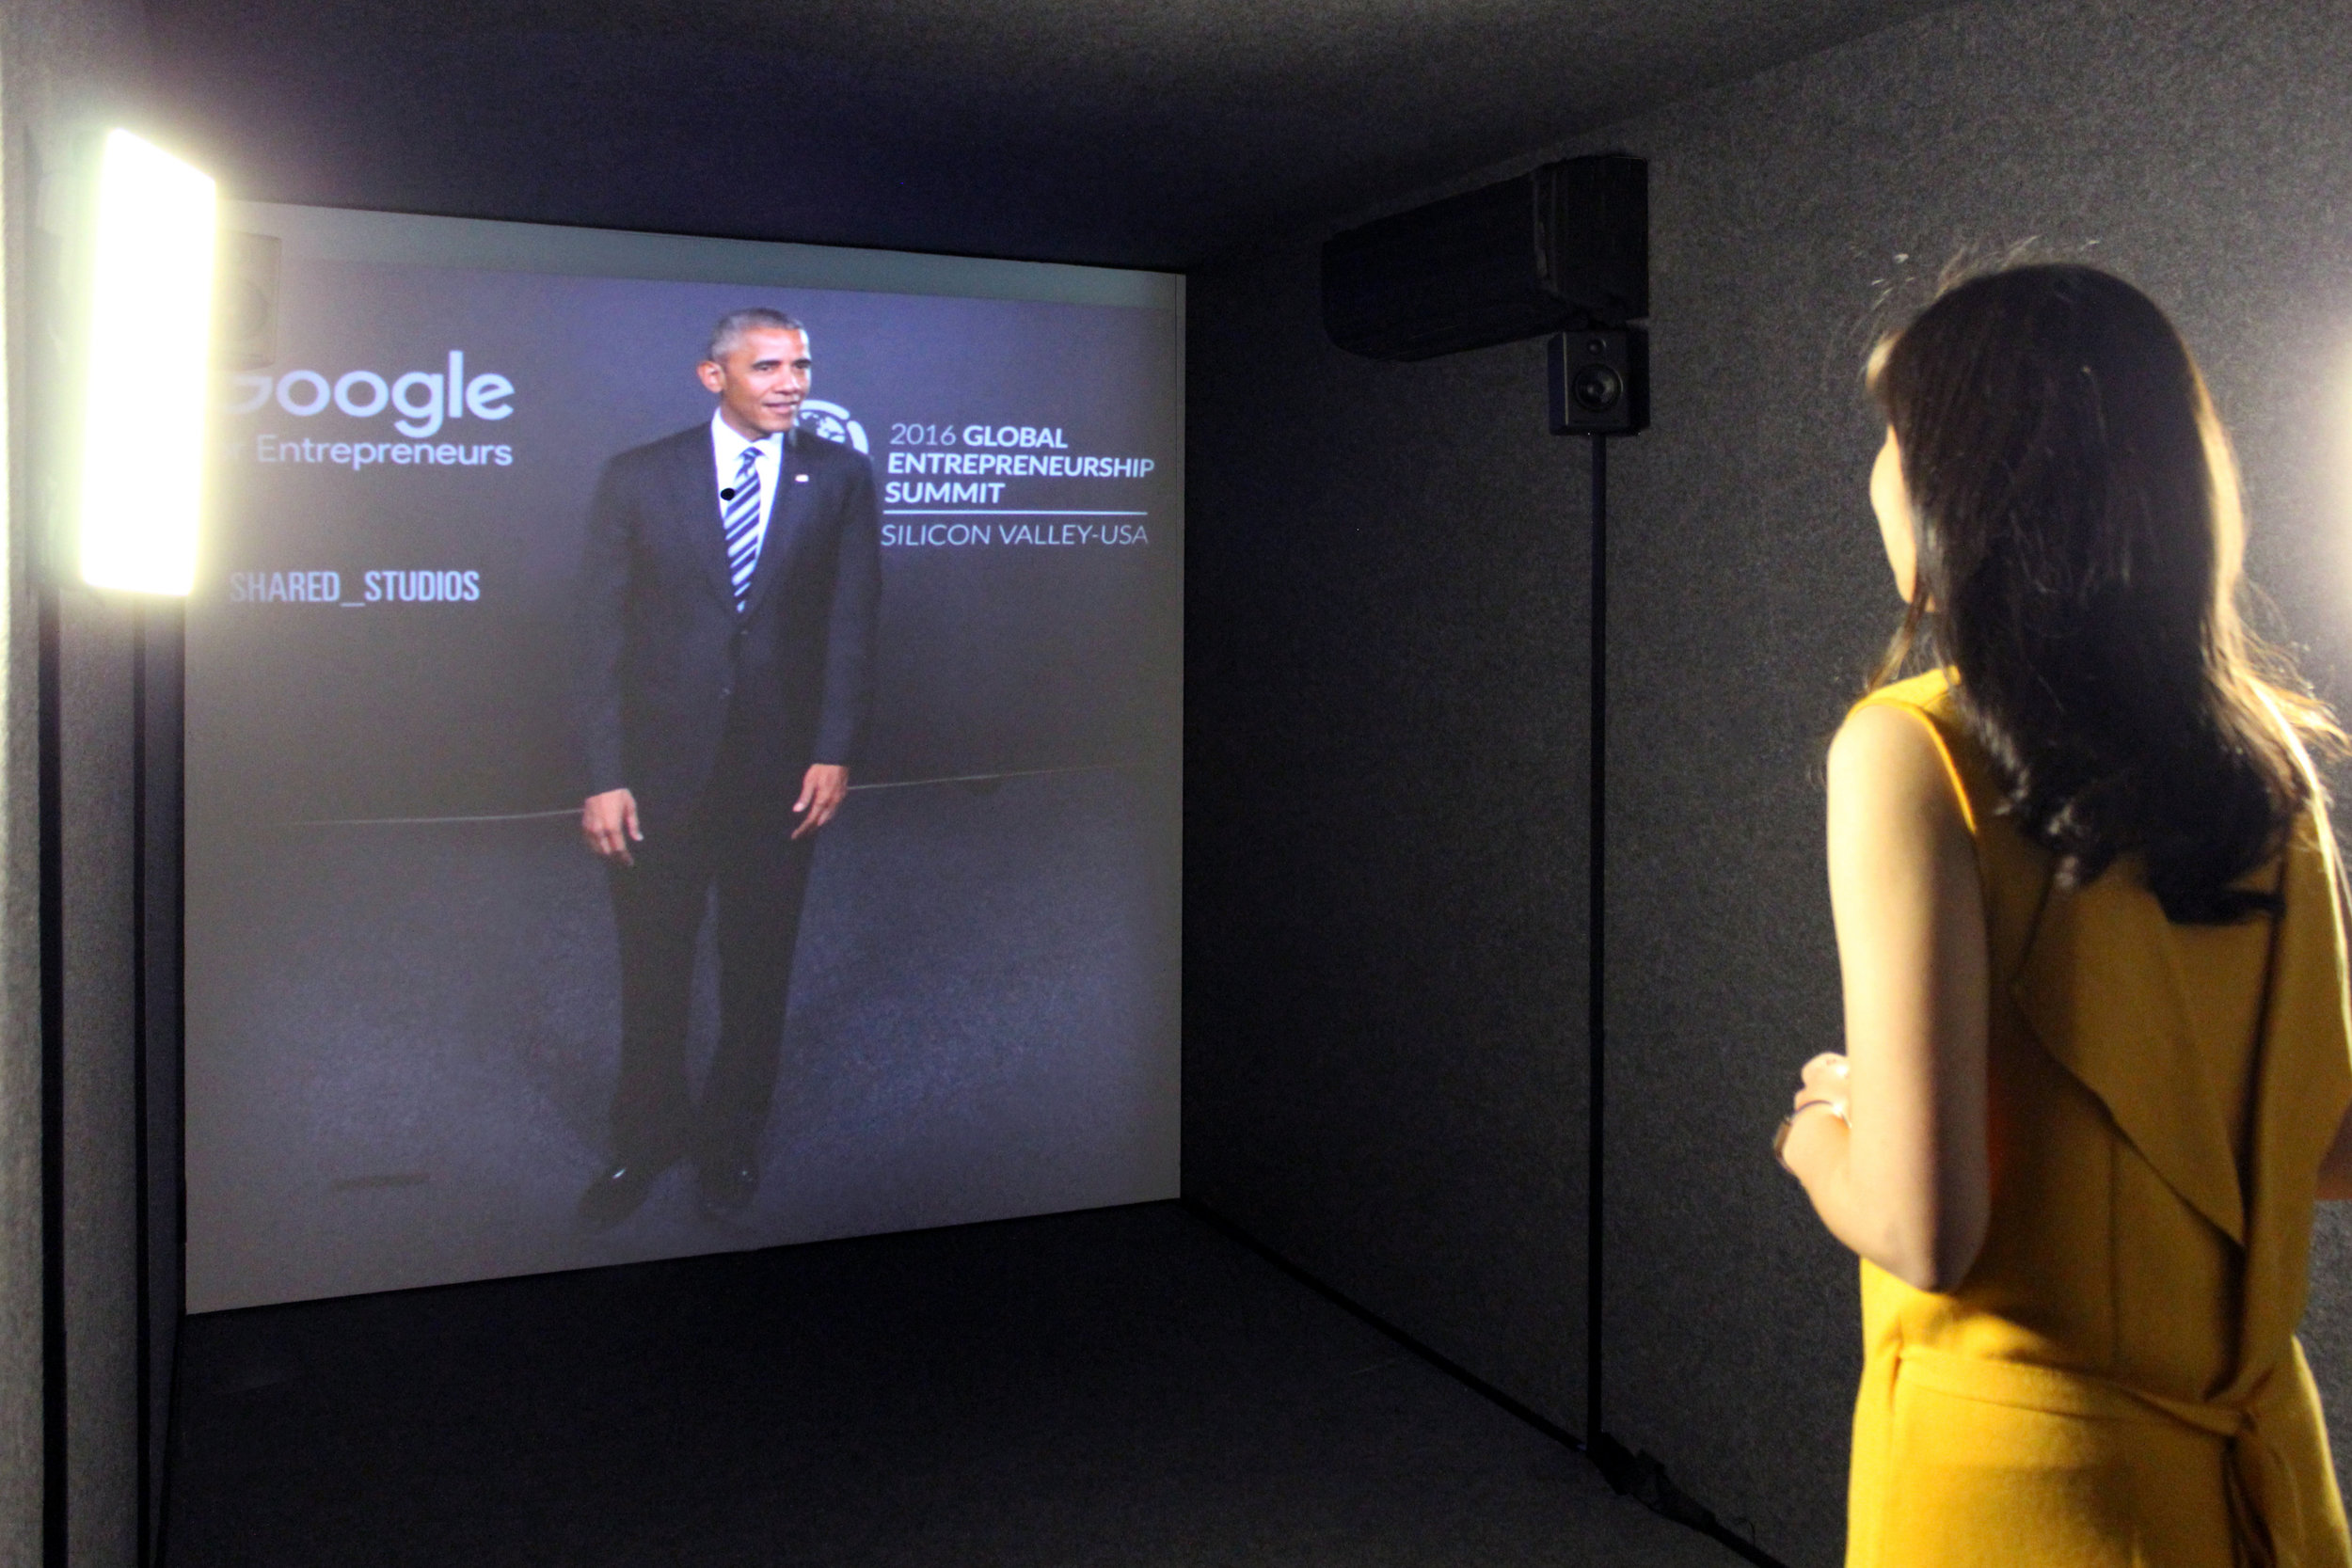 Entrepreneur in the Seoul Portal sharing her ideas with President Barack Obama at Portal Screen in Palo Alto